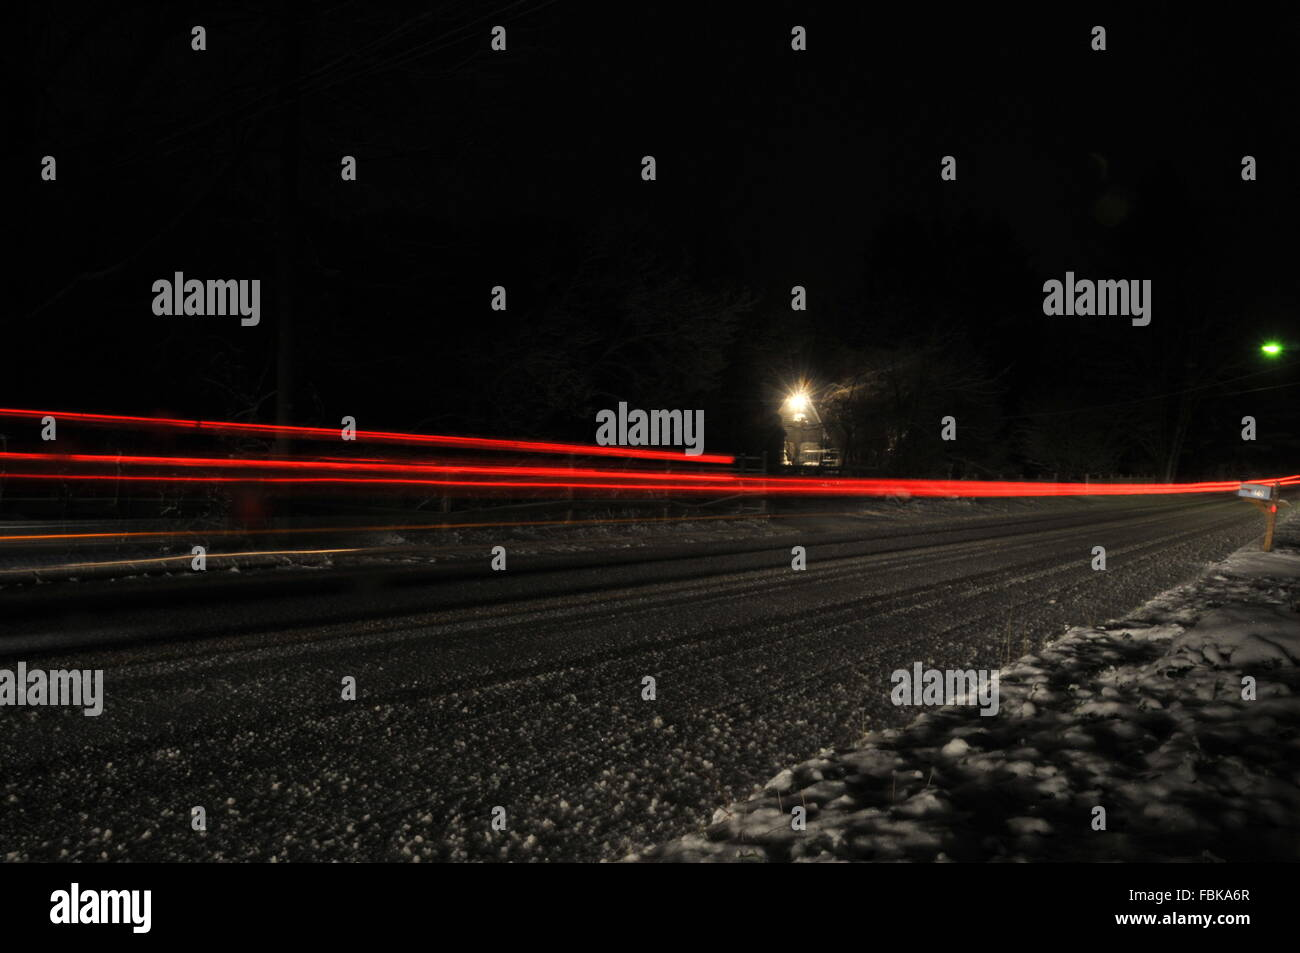 A wide angle shot of cars passing along a road on a corner allows for an interesting shot of a turning car - Stock Image